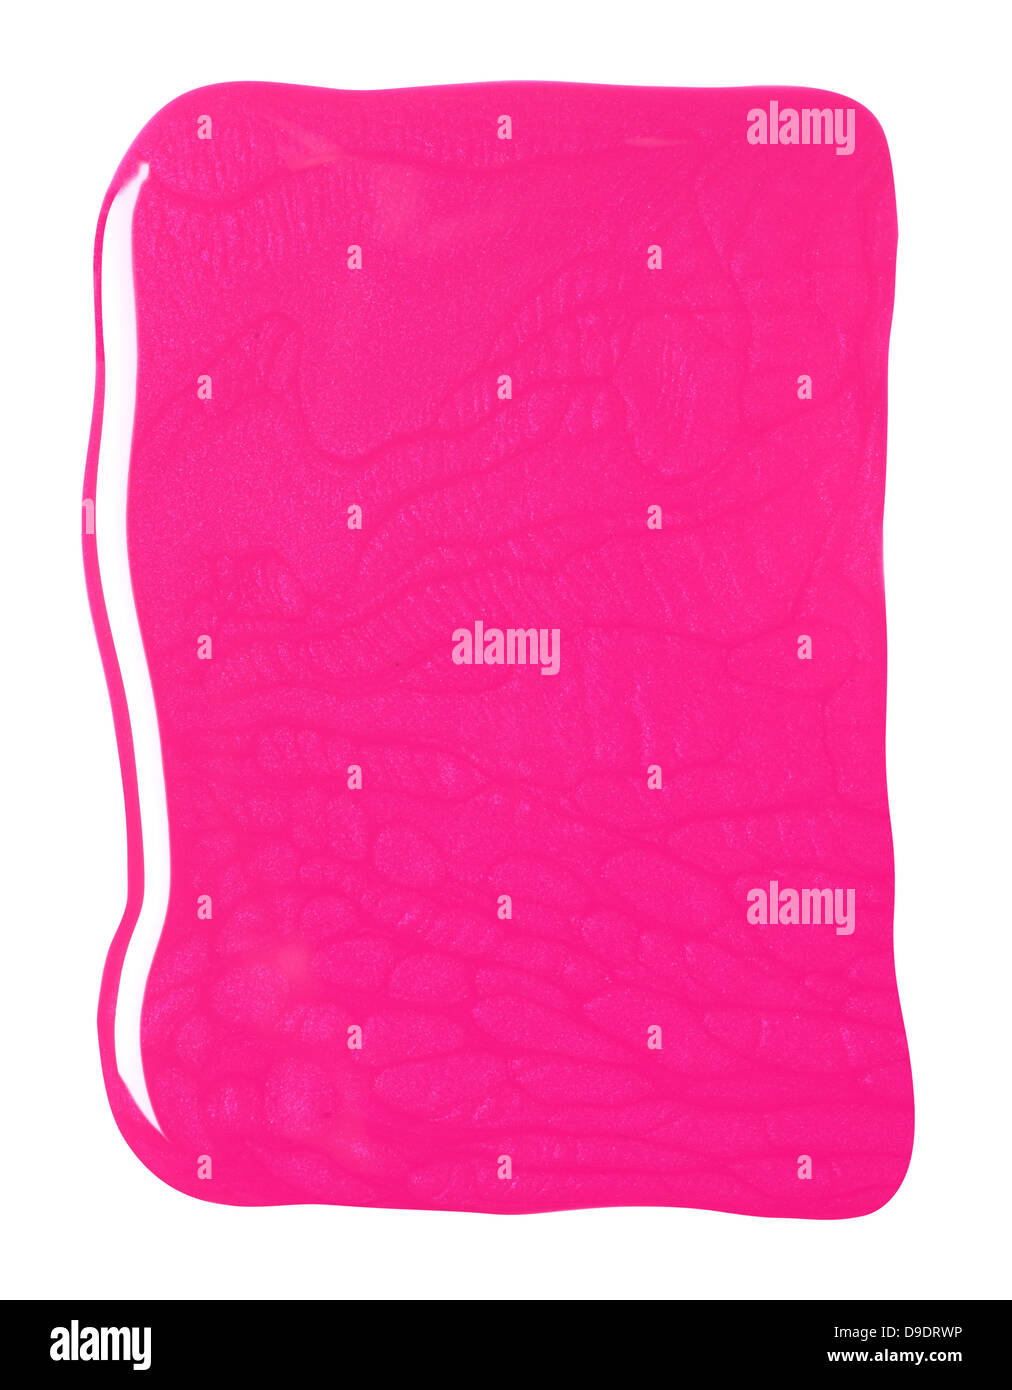 pink nail polish blob cut out onto a white background stock image